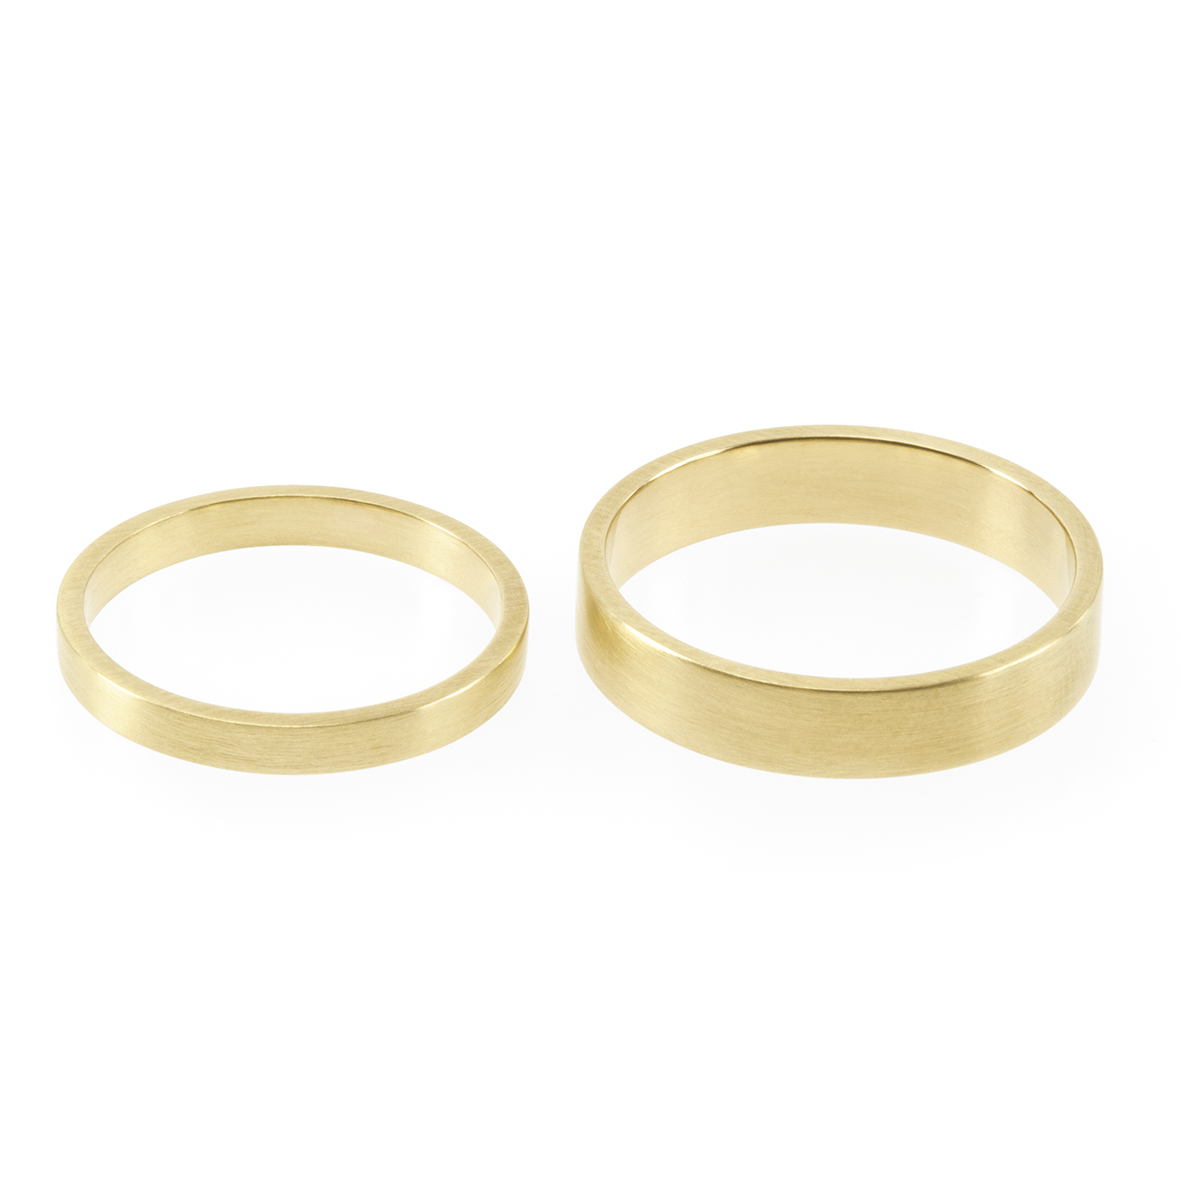 A contemporary, minimalist flat profiled band complimented by a soft matte texture.